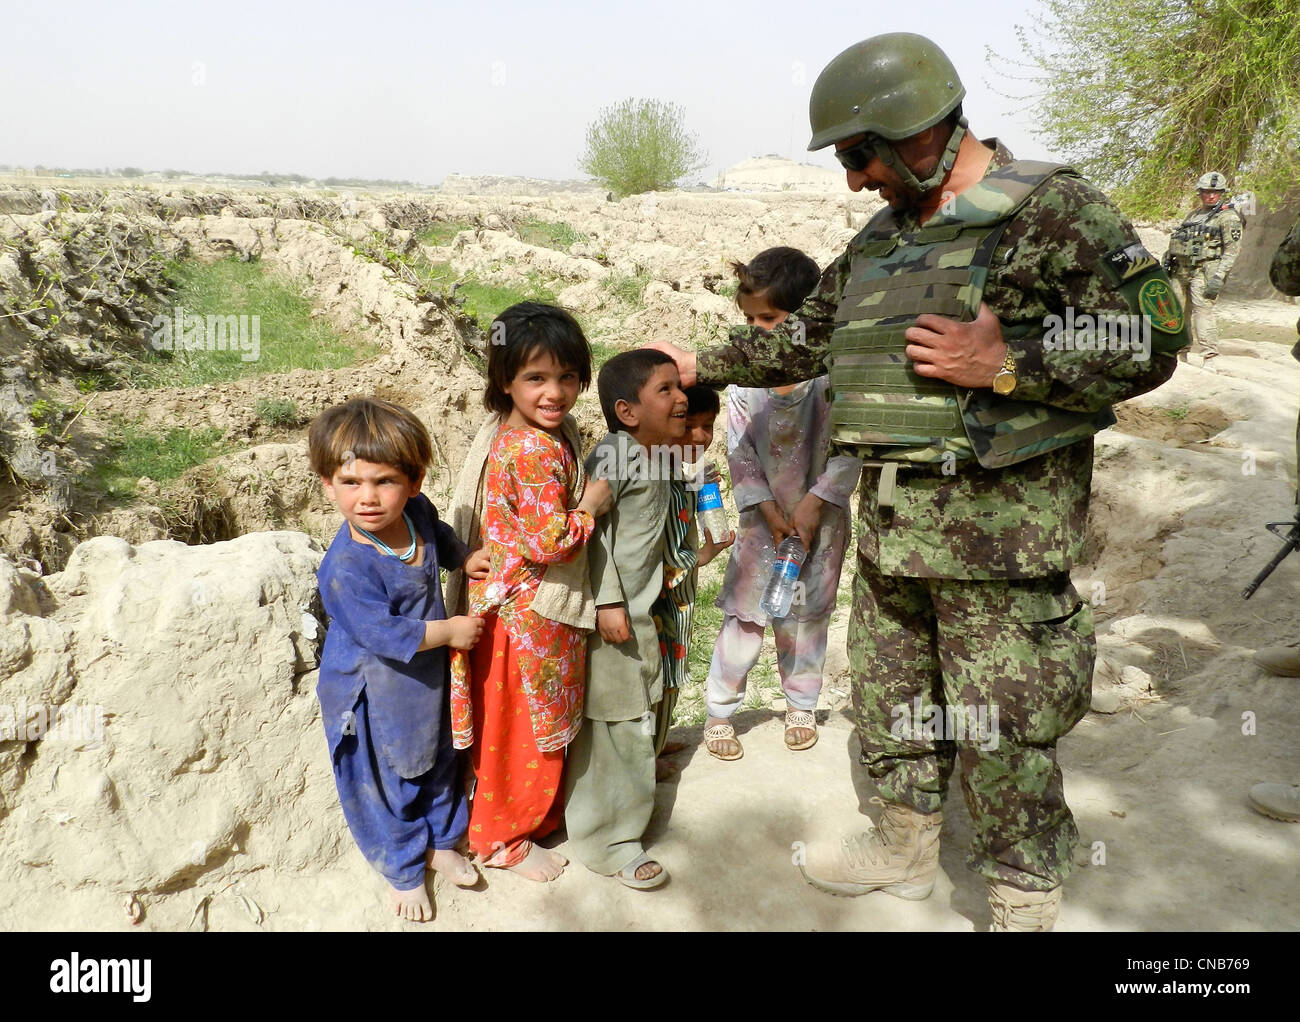 Afghan National Army Brig. Gen. Ahmed Habibi takes a break from combat operations to greet children April 1, 2012 - Stock Image